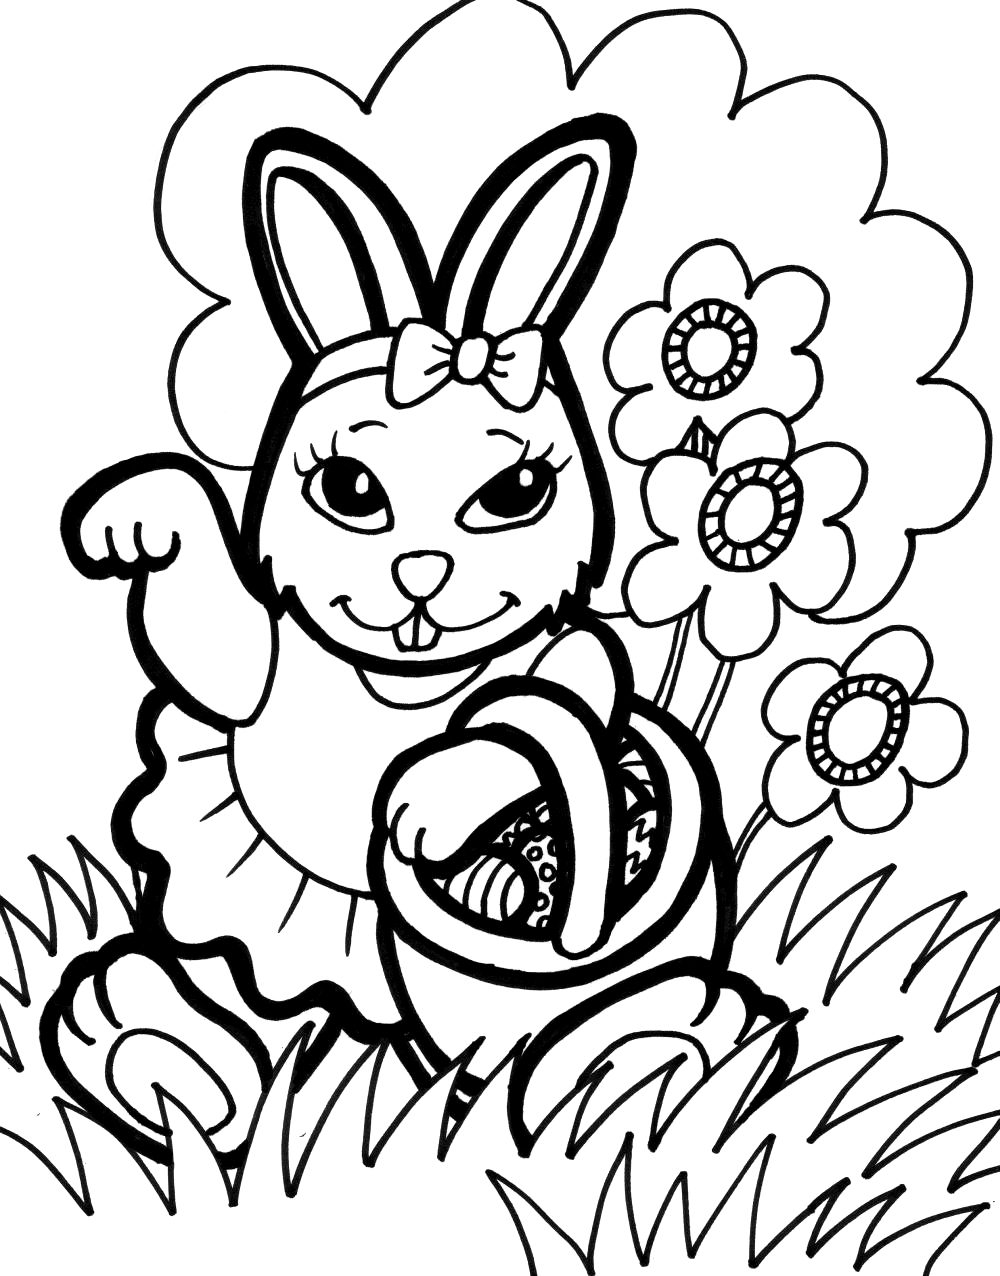 picture of a rabbit to color rabbits and bunnies a lovely rabbit sitting coloring page rabbit picture to a of color